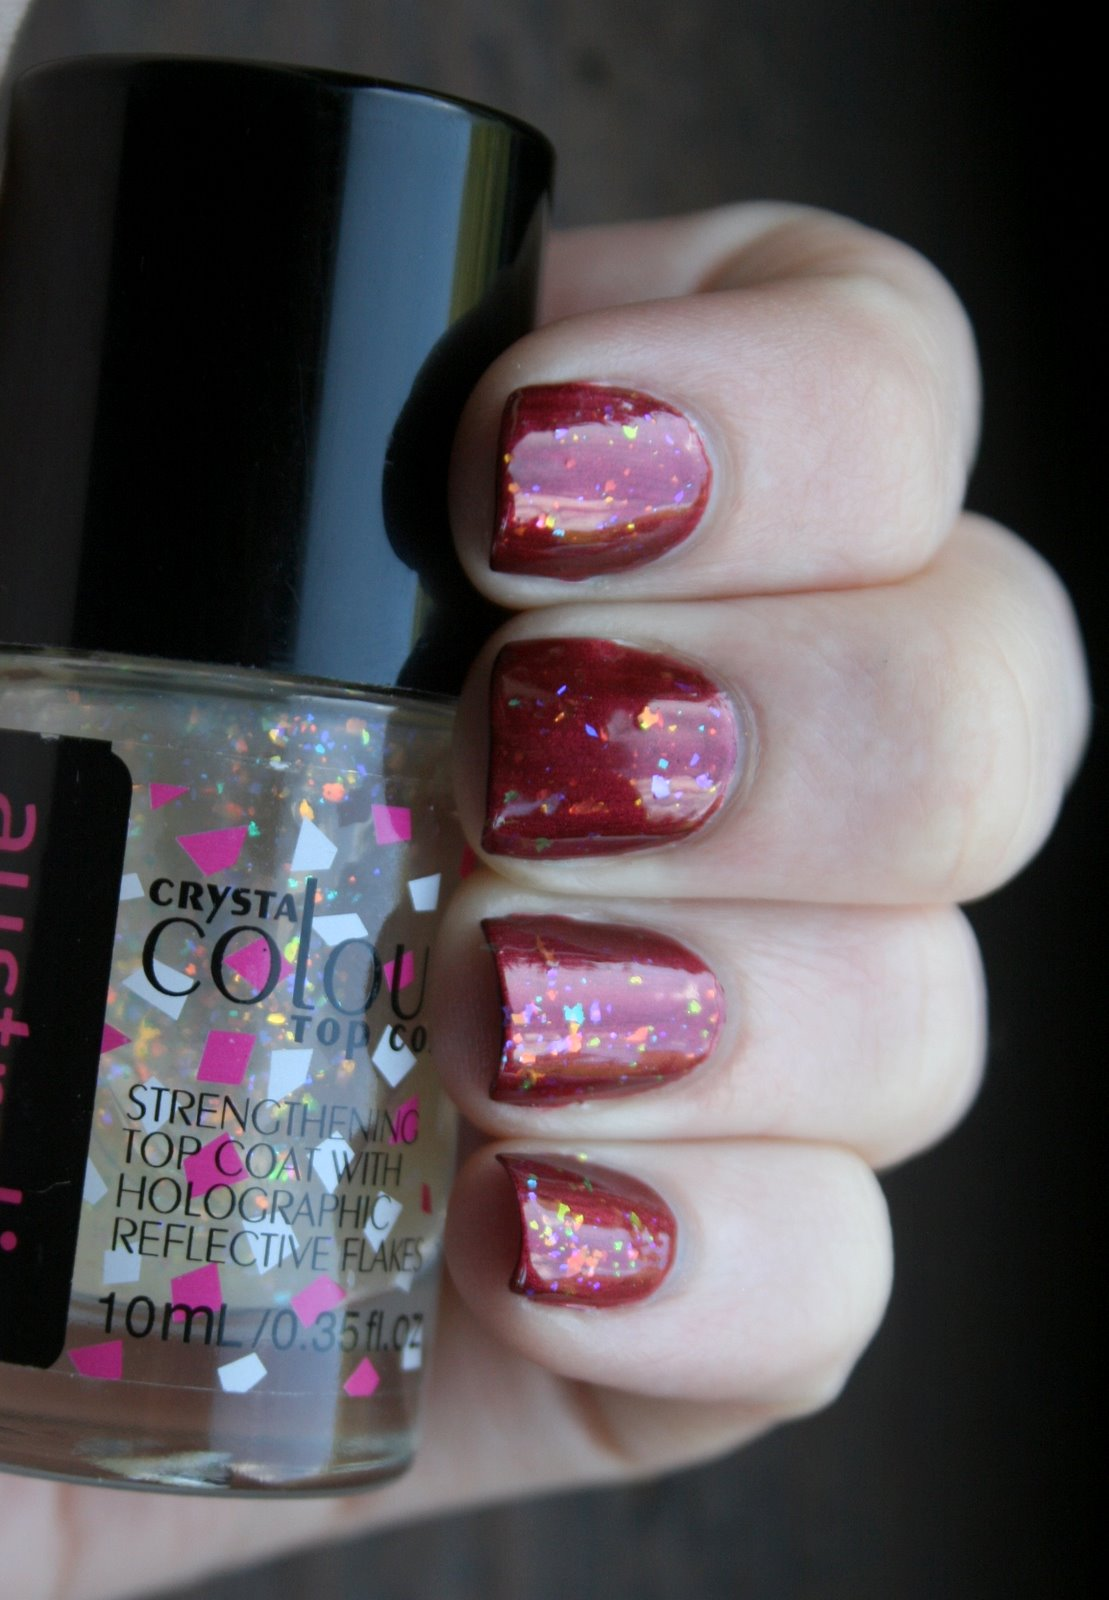 Australis Specktacular over Revlon Very Currant swatch